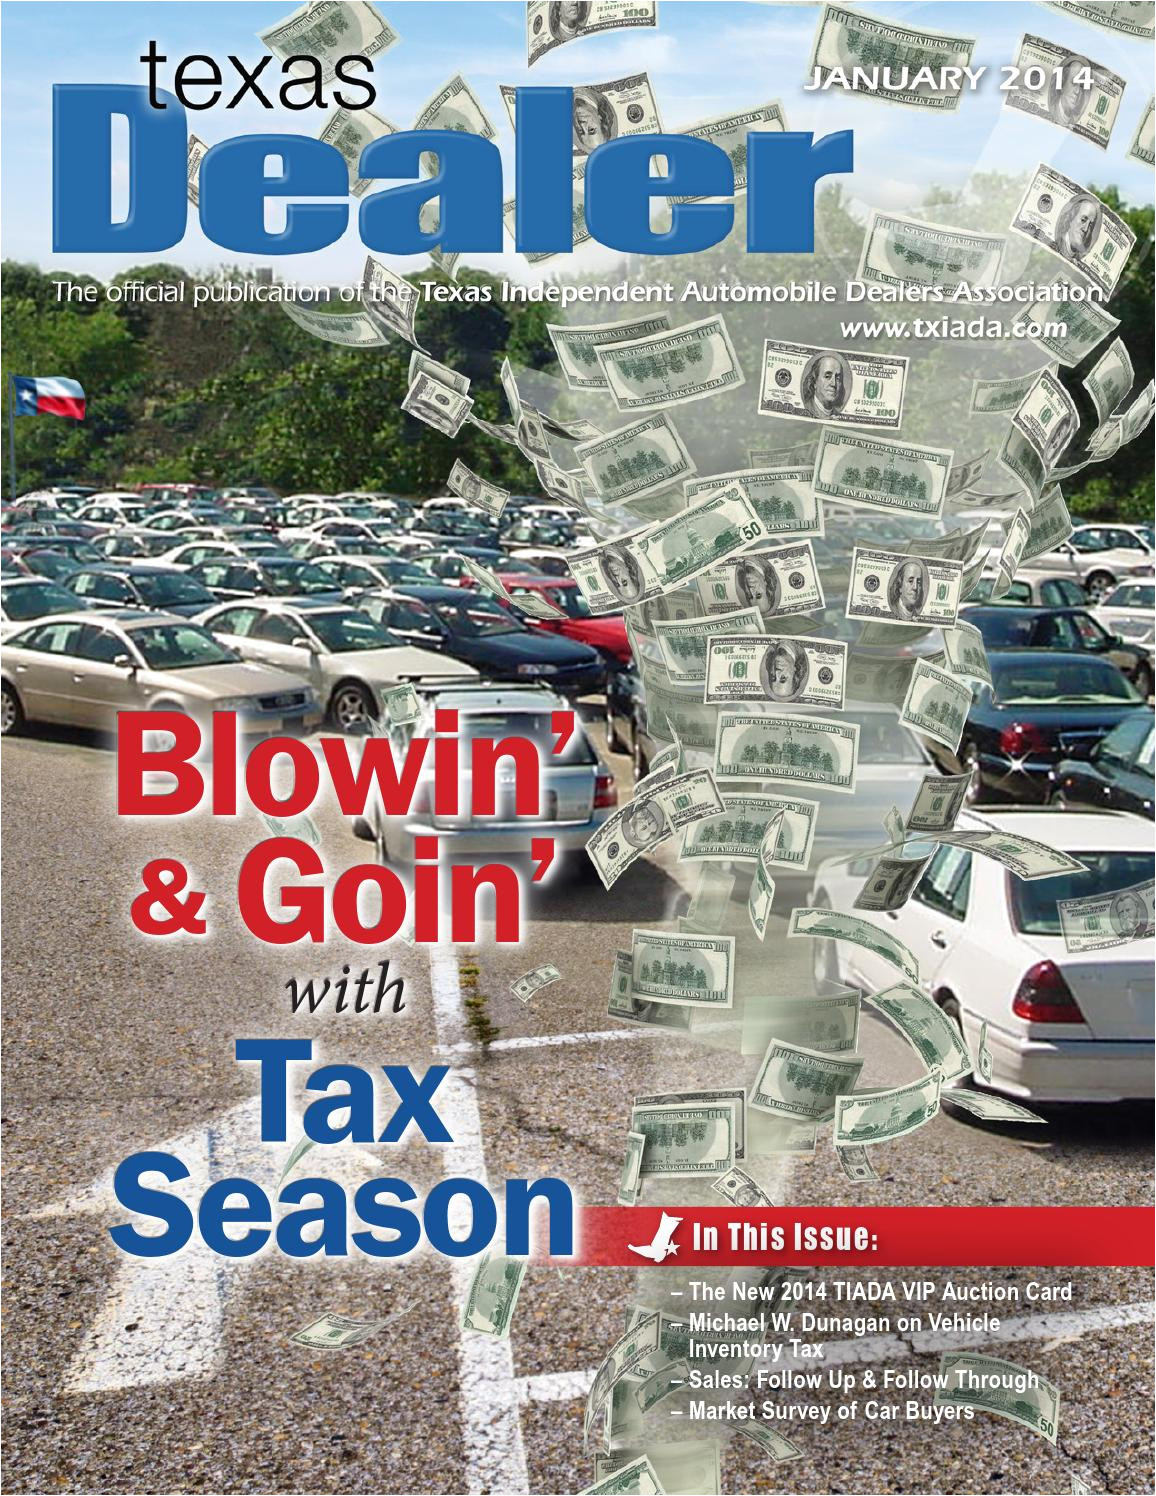 texas dealer january 2014 by texas independent auto dealers association issuu